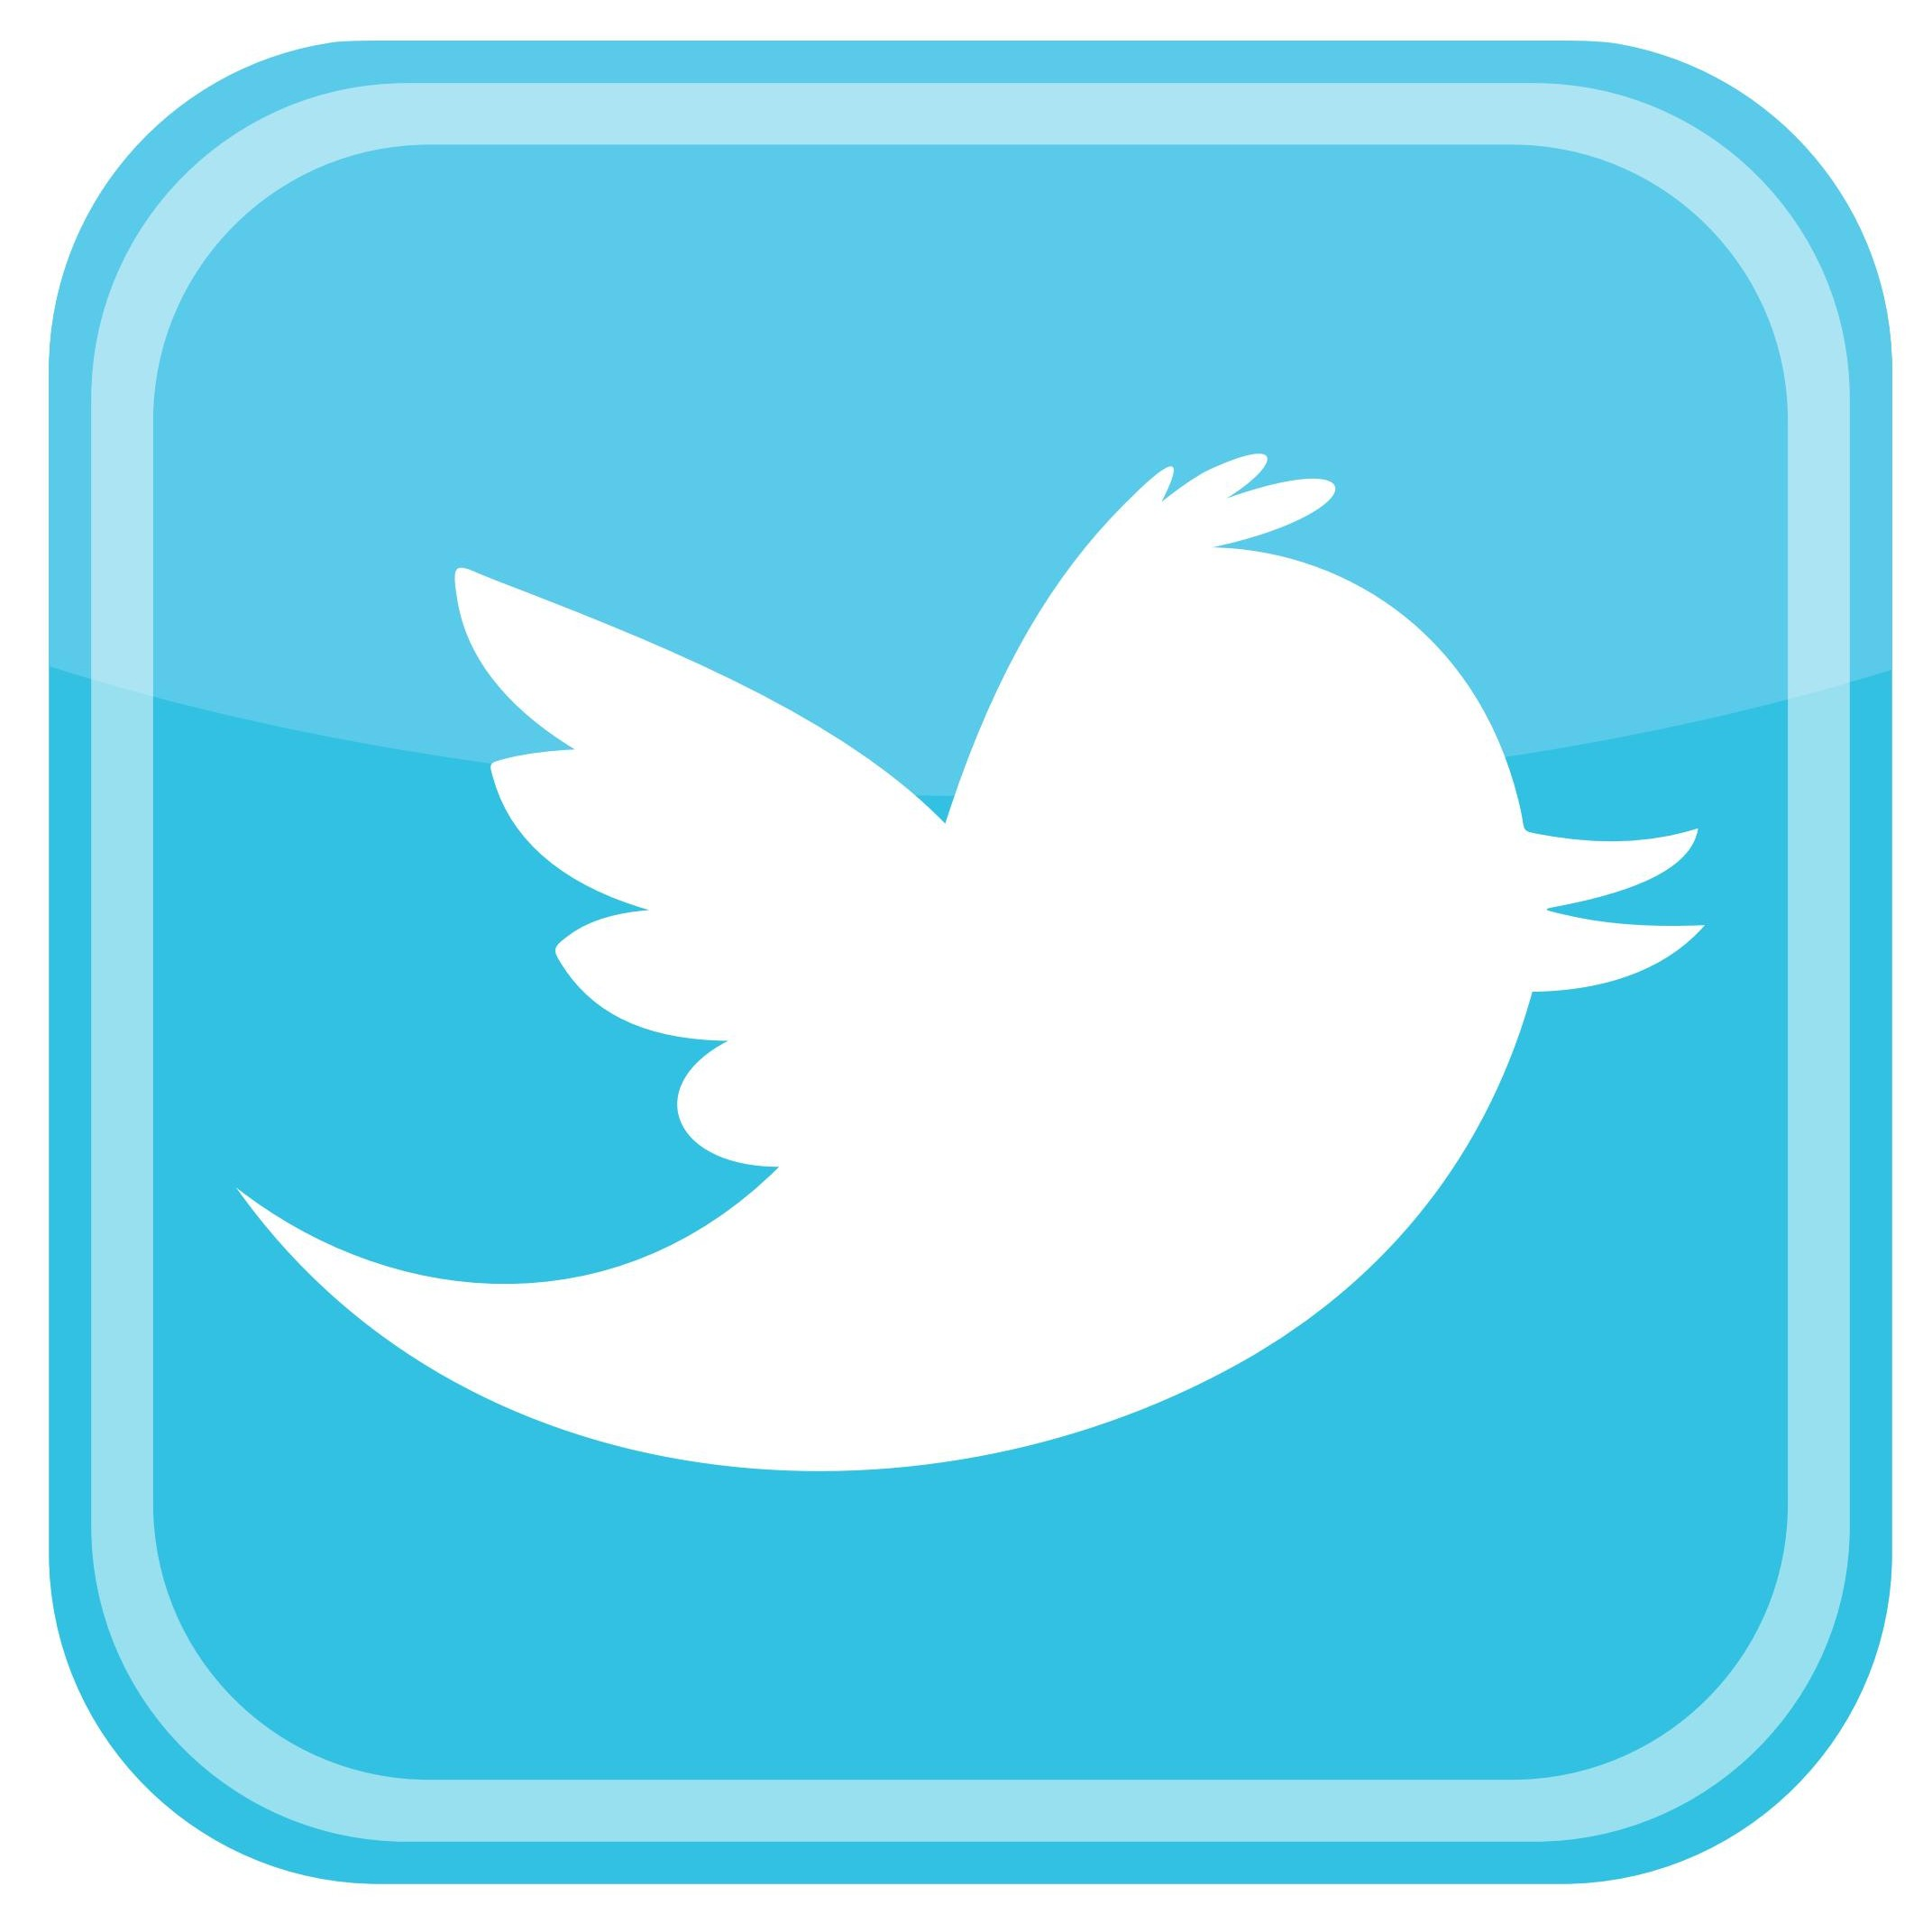 twitter-icons-vector-6